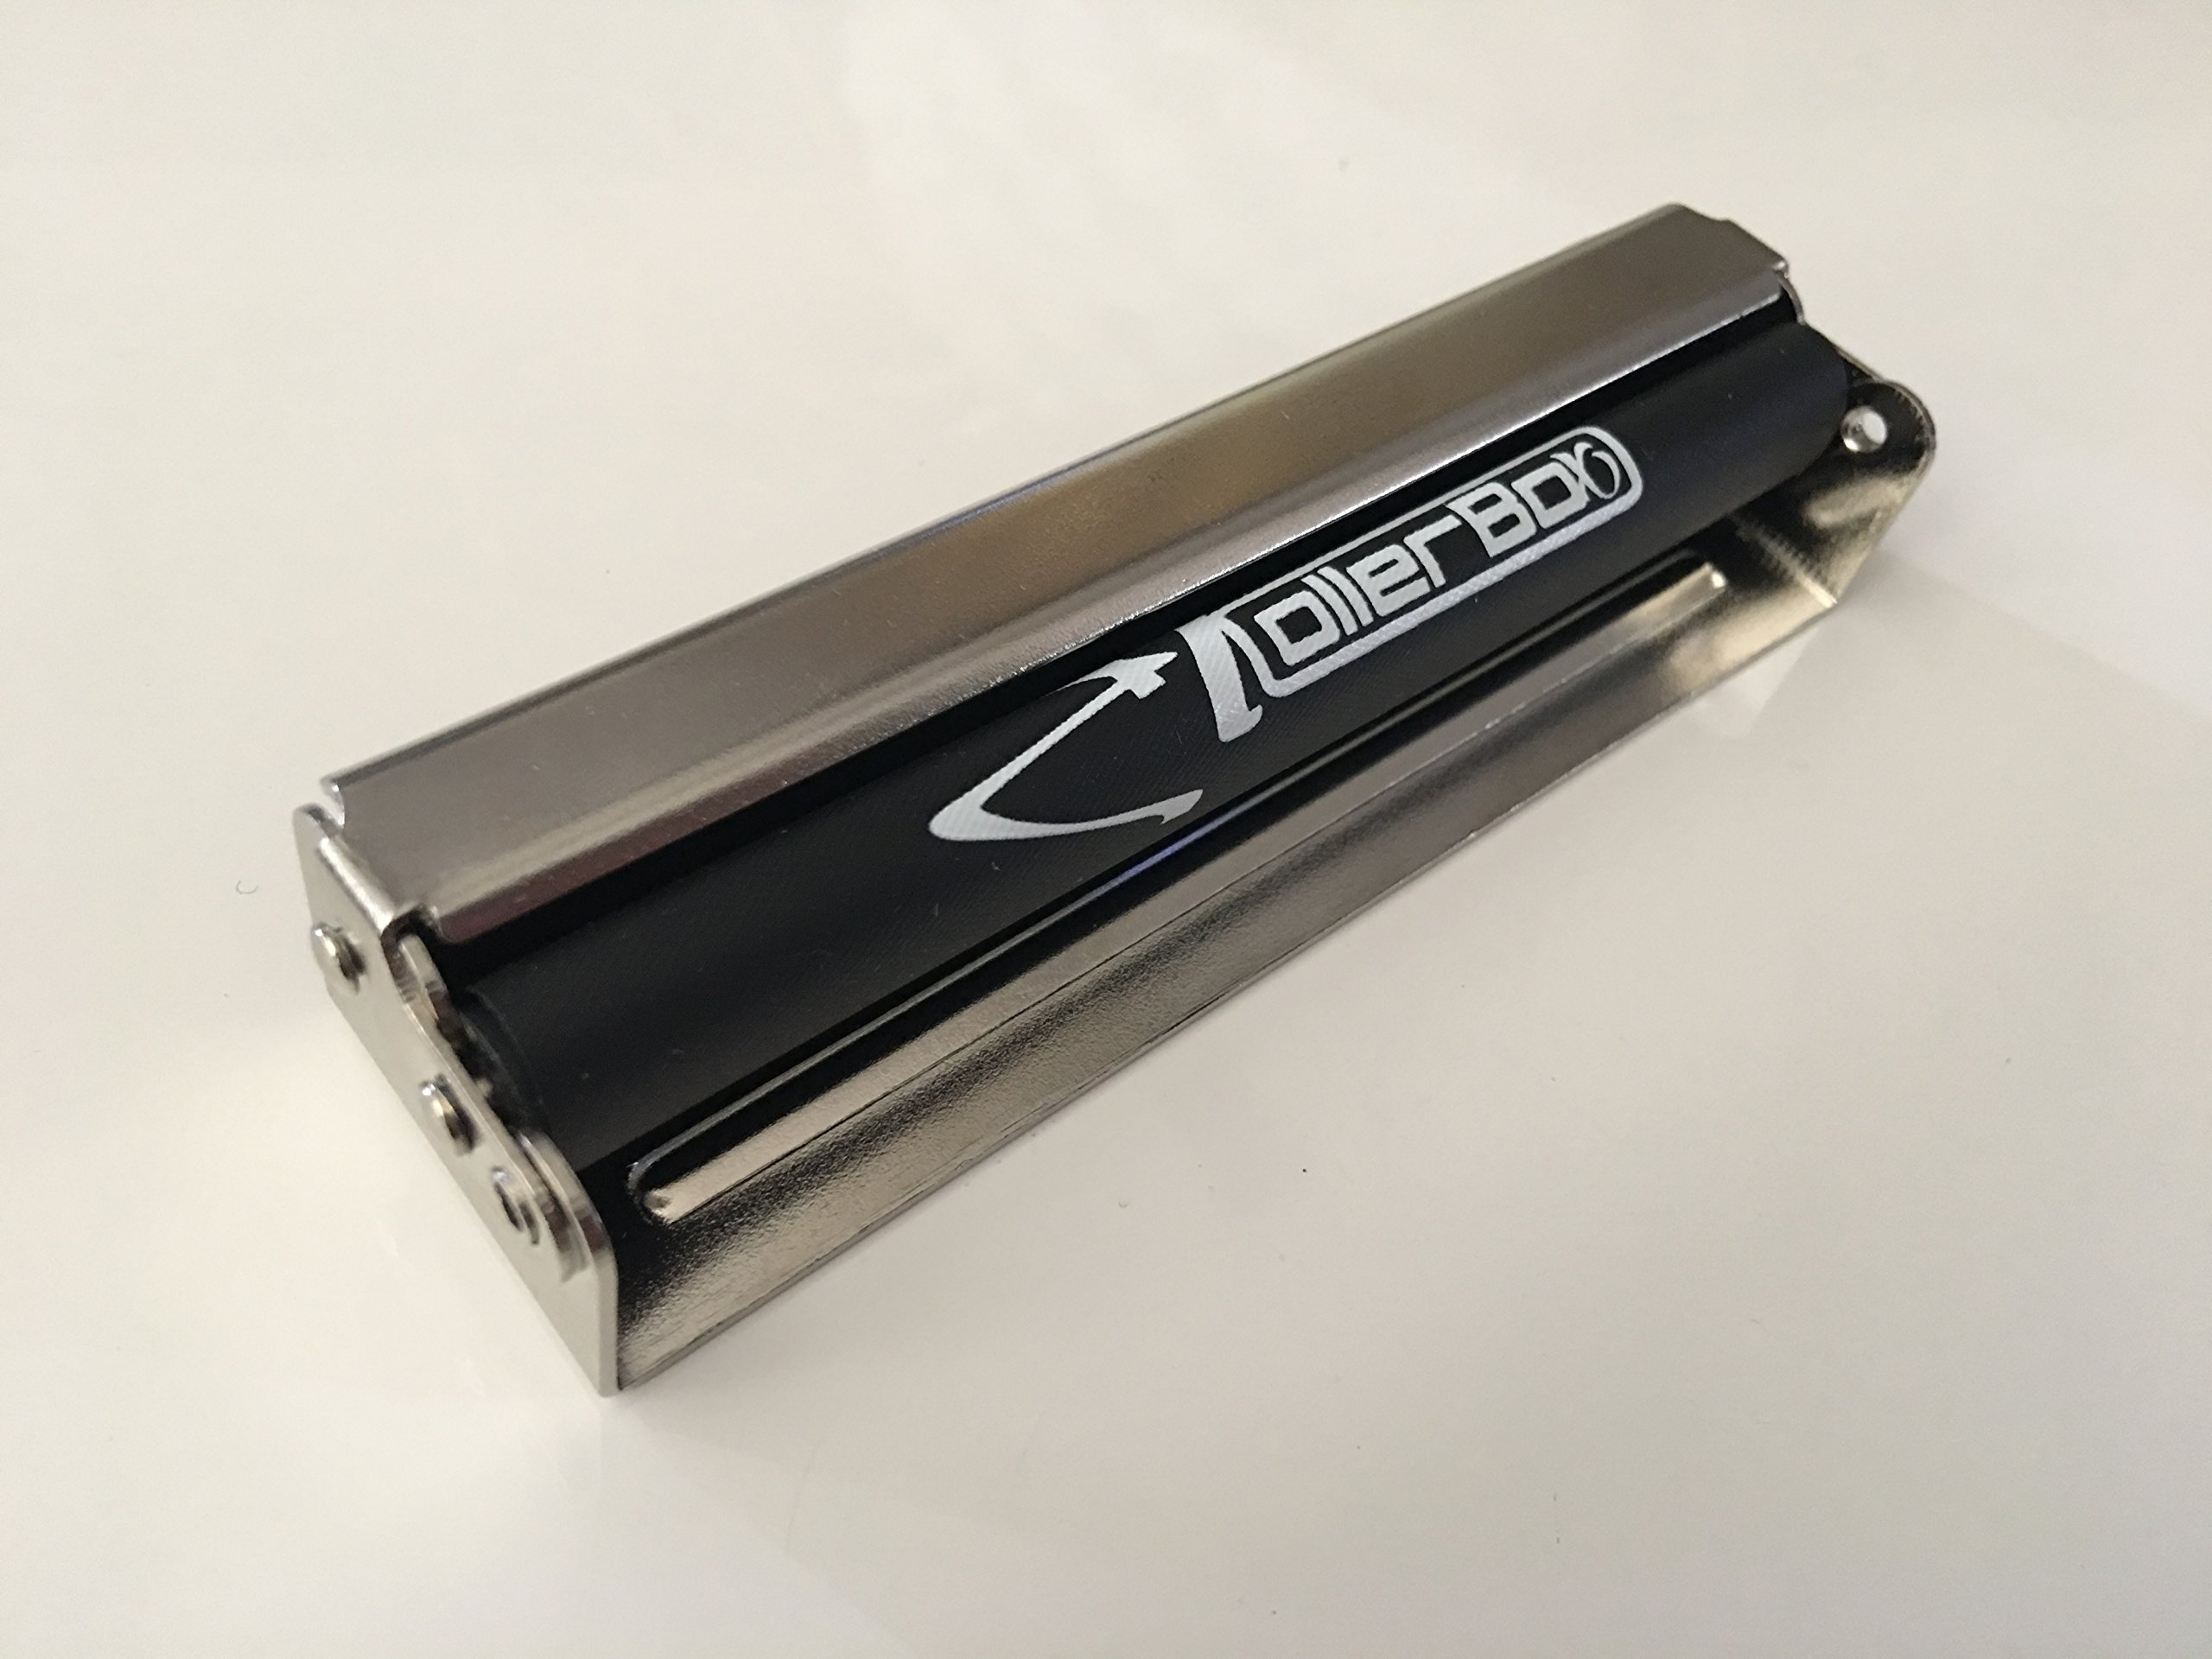 RollerBox The Mini, Limited Edition, 110mm Large, Rolls up to 110mm King Sized Cigarette